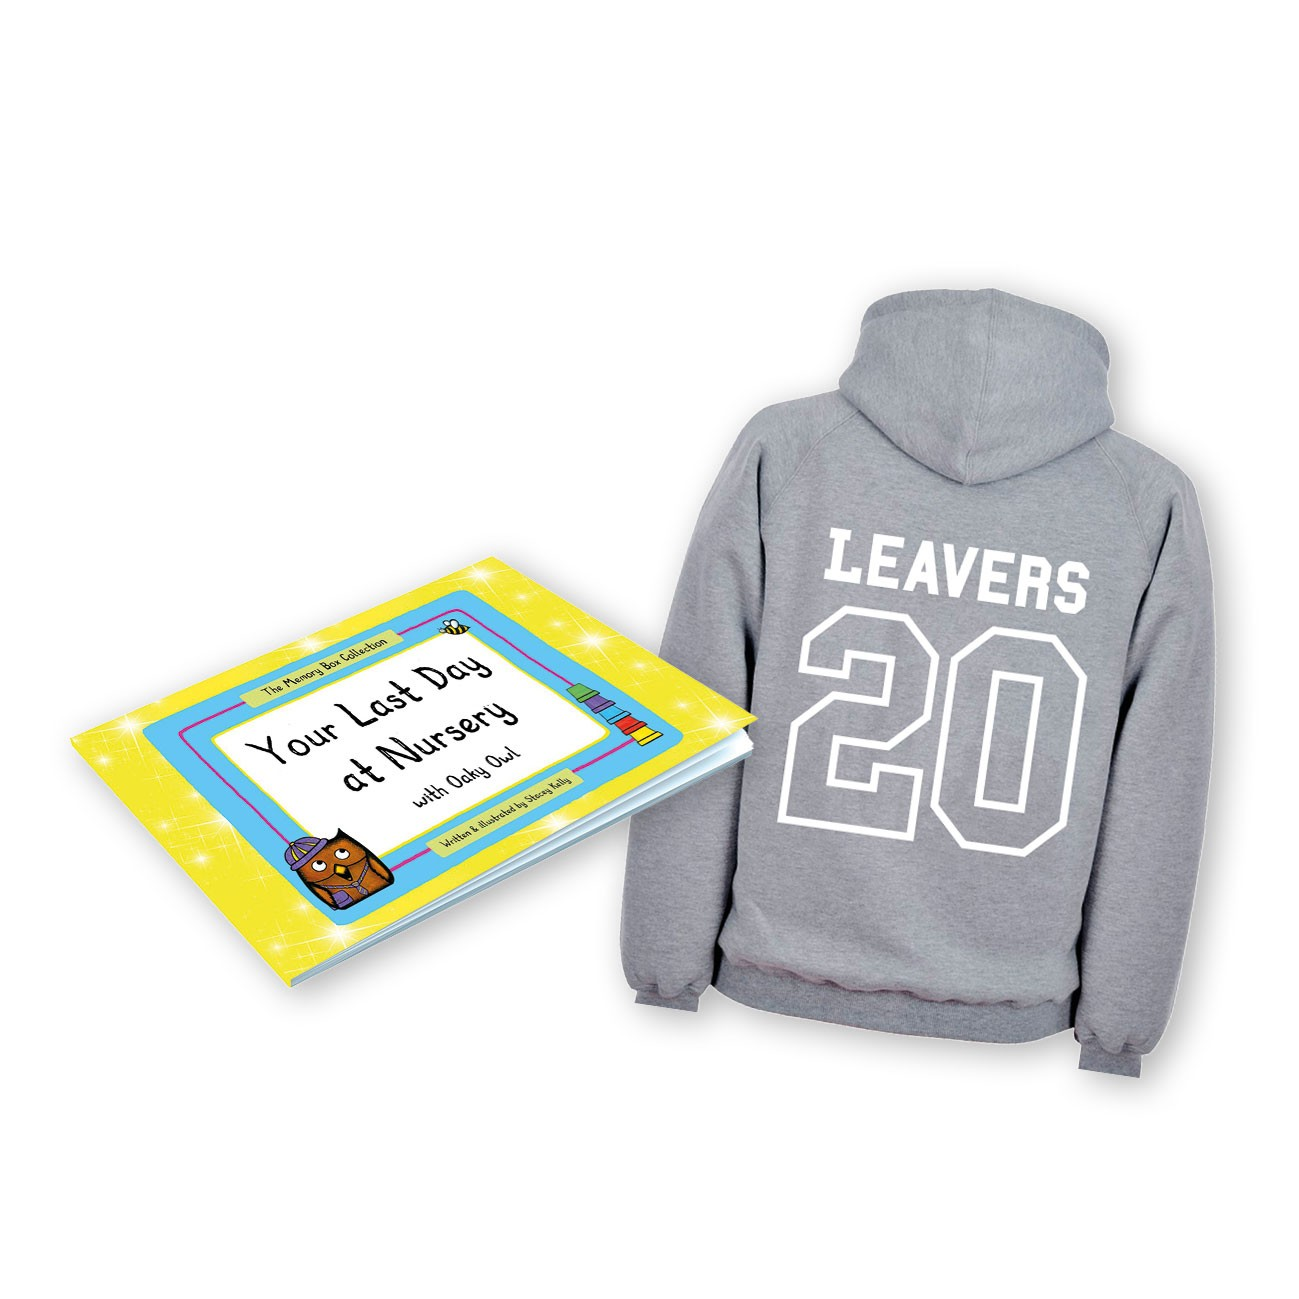 Early Years Leavers Gift Set with grey hoodie